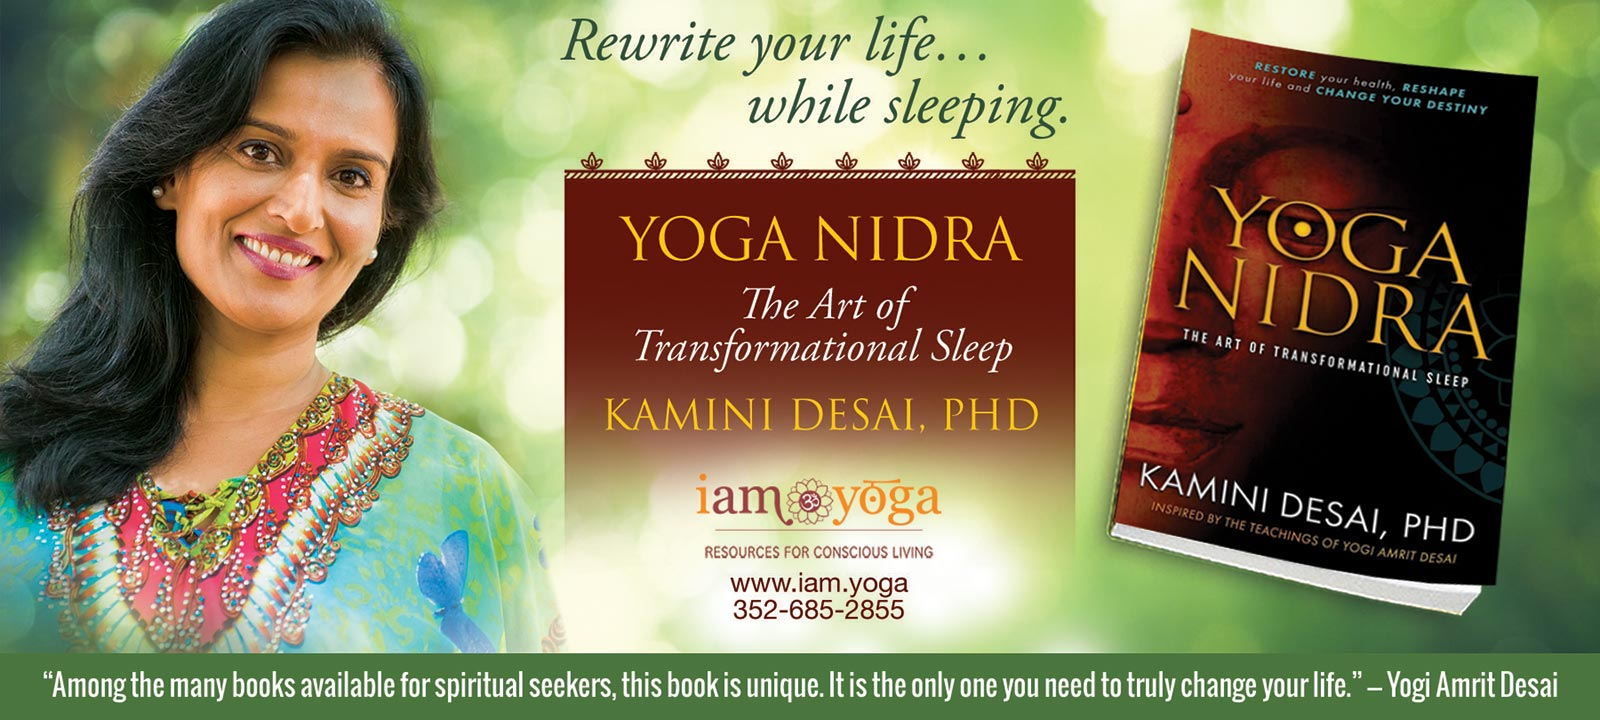 The Art of Transformational Sleep - Kamini Desai, Ph.D.